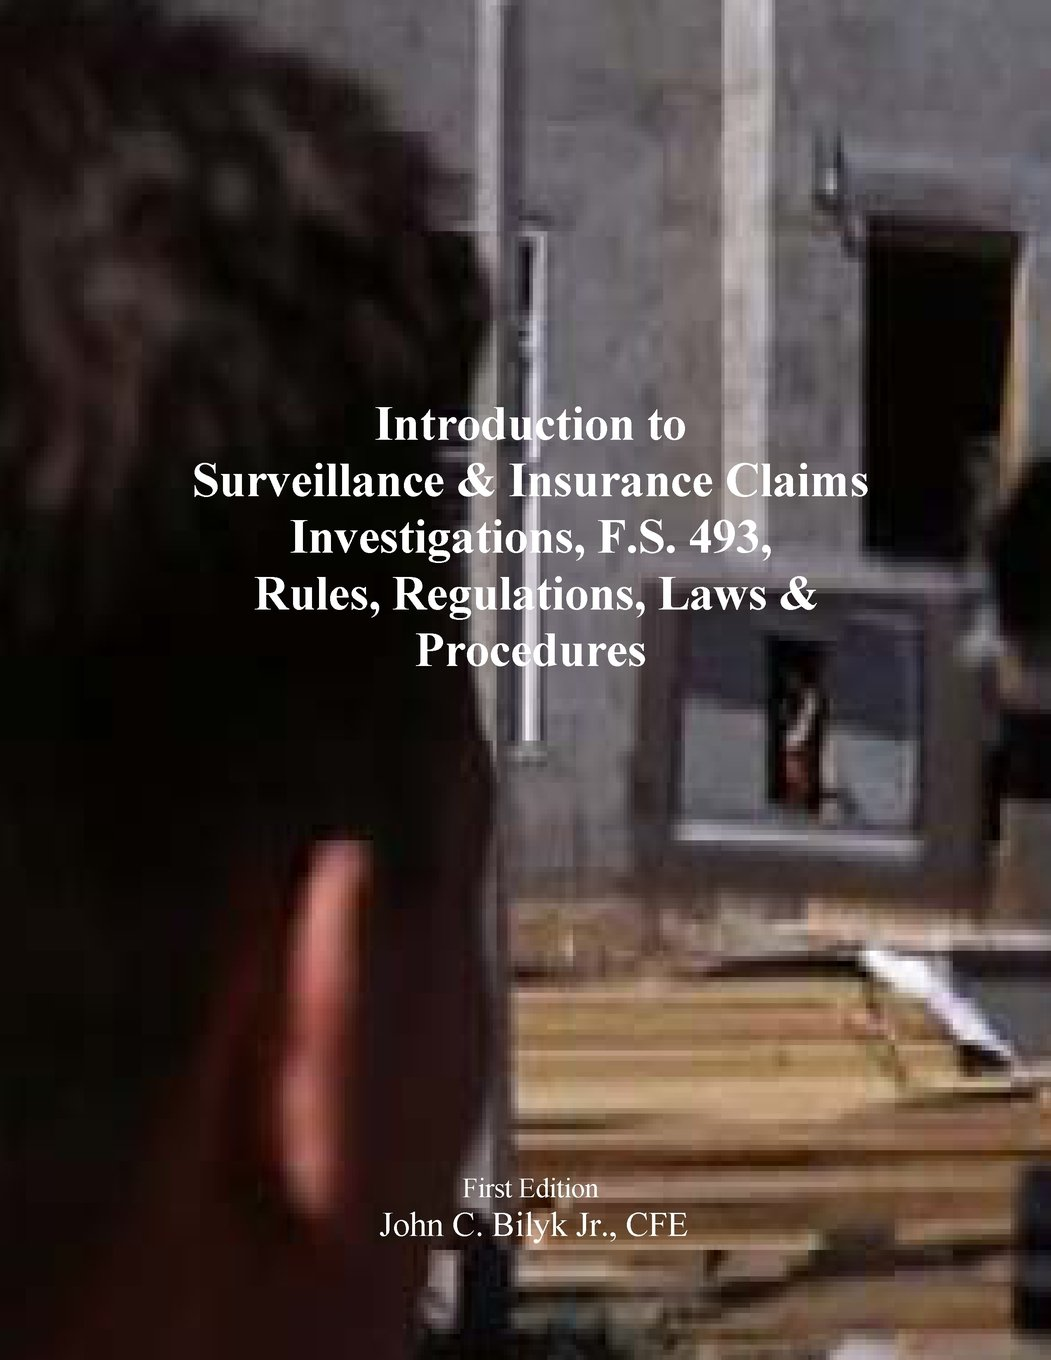 Introduction to Surveillance & Insurance Claims Investigations